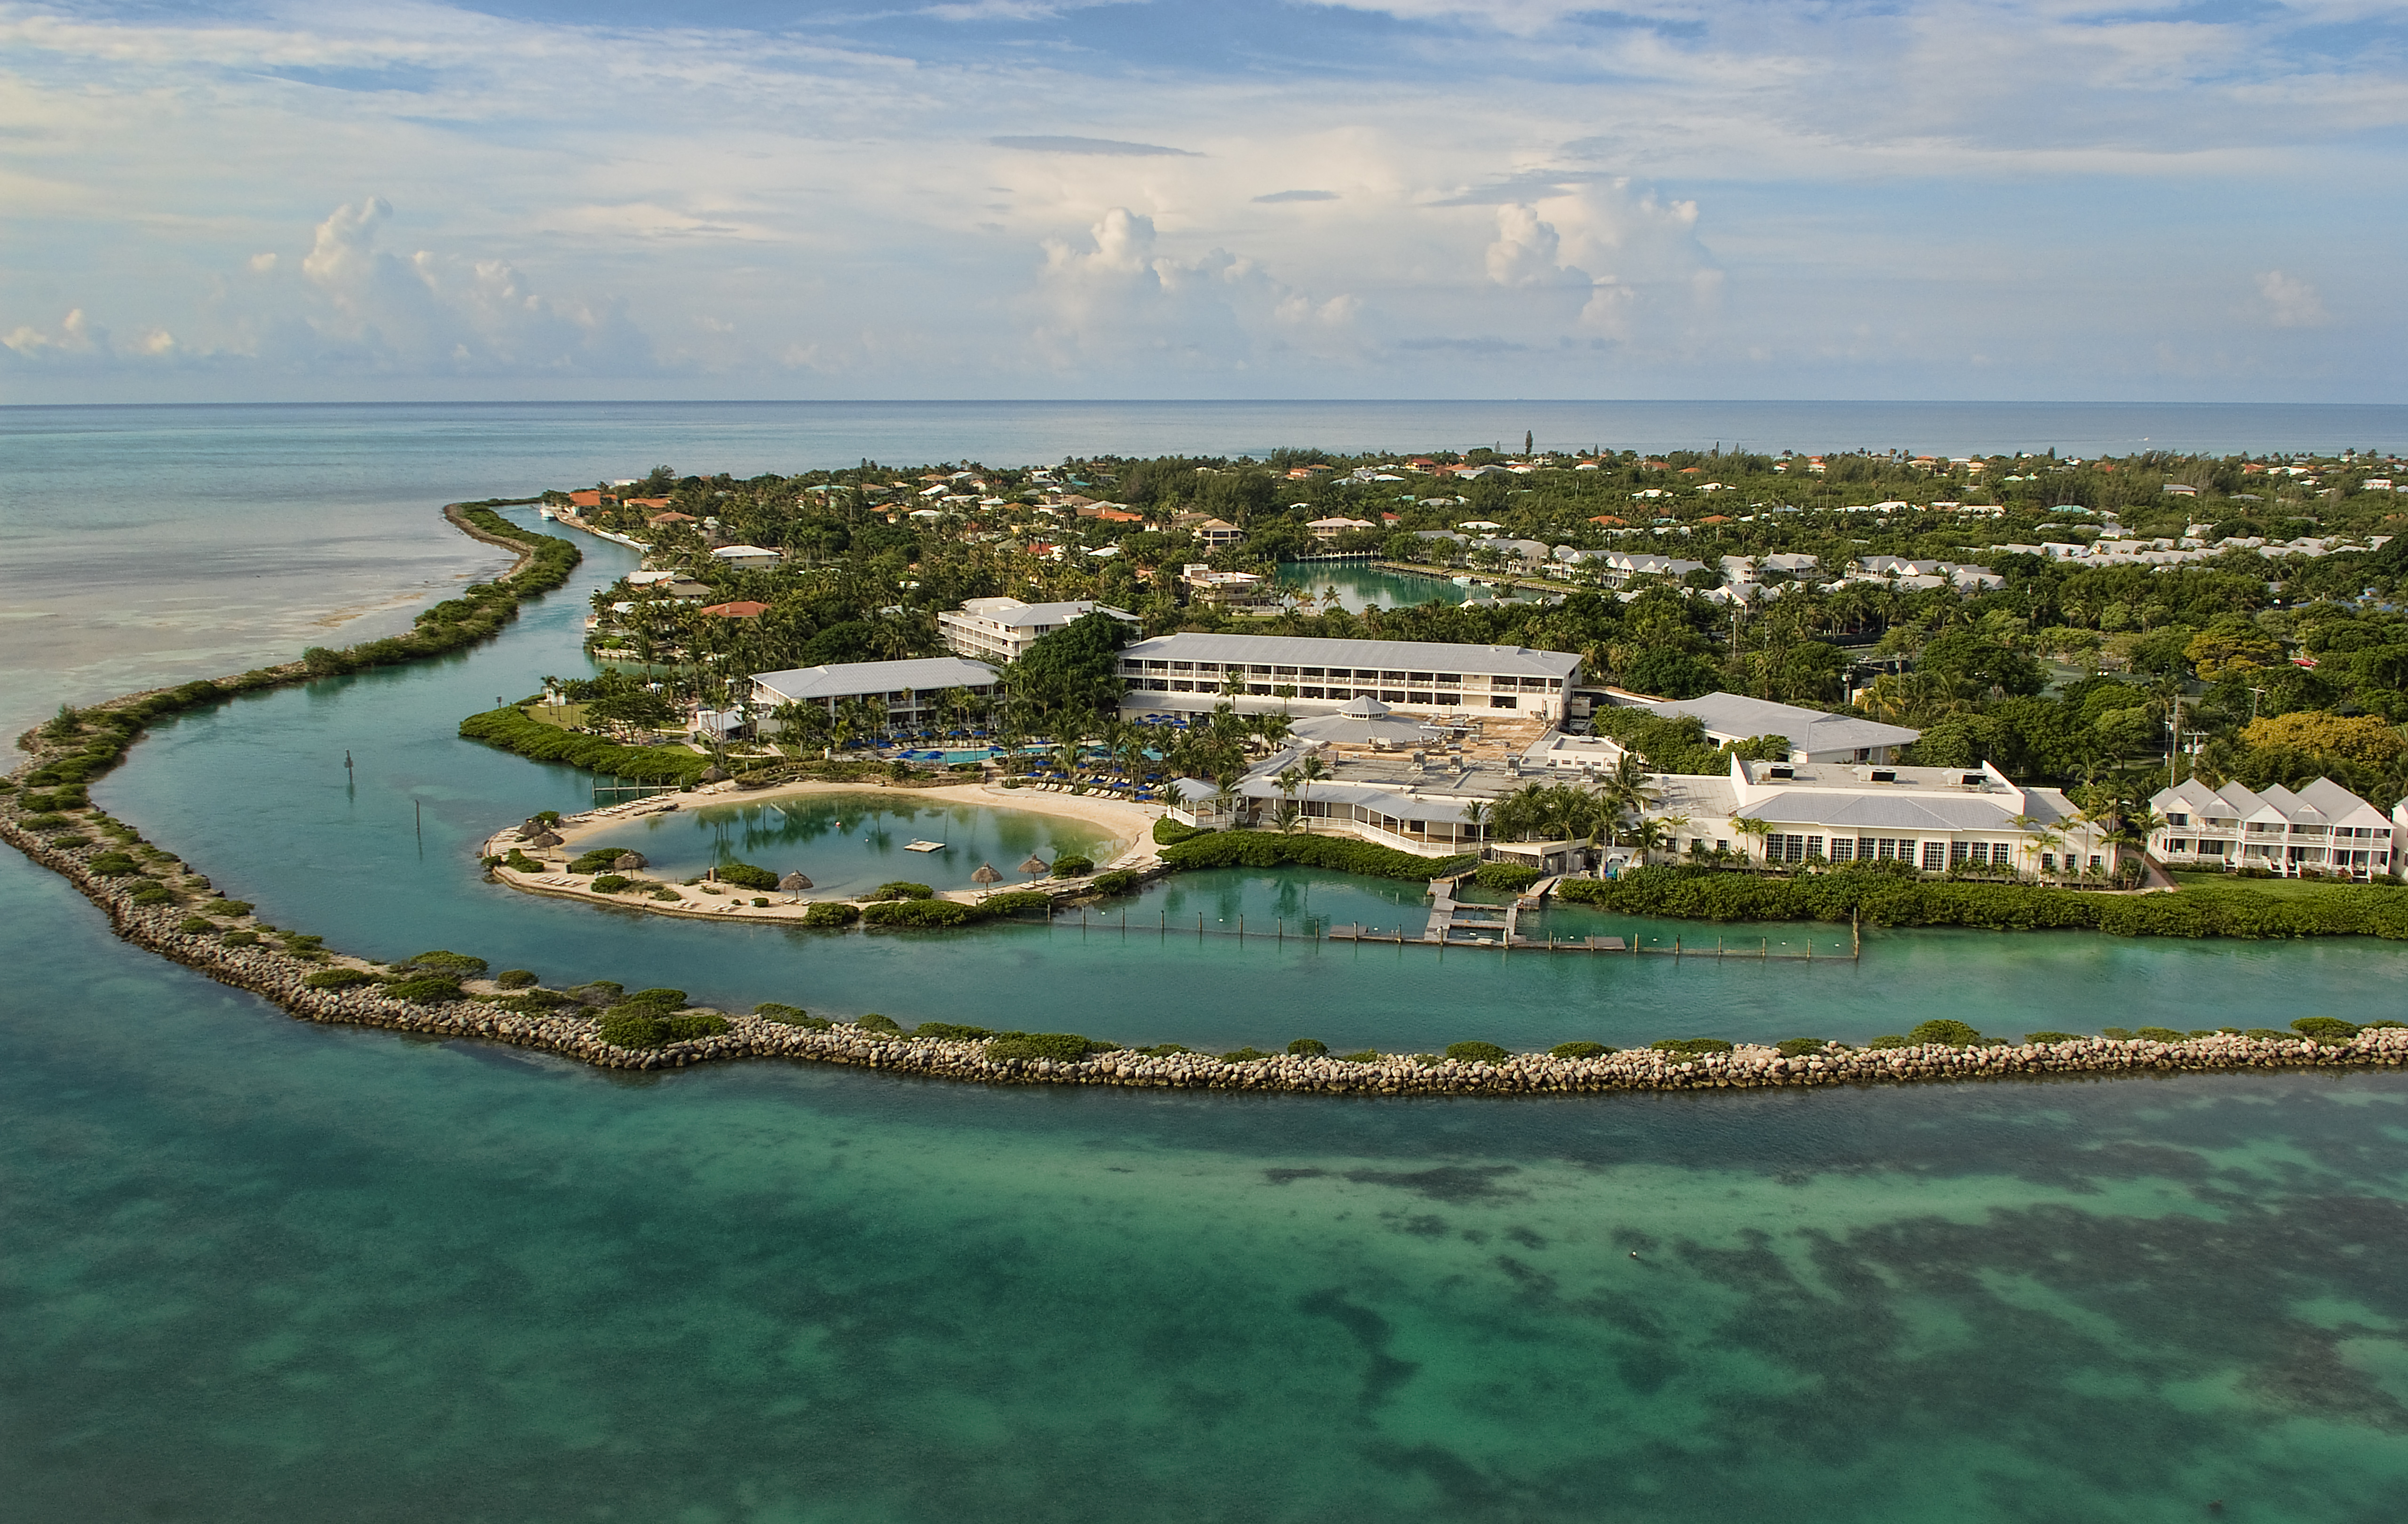 Aerial view of Hawks Cay Resort.